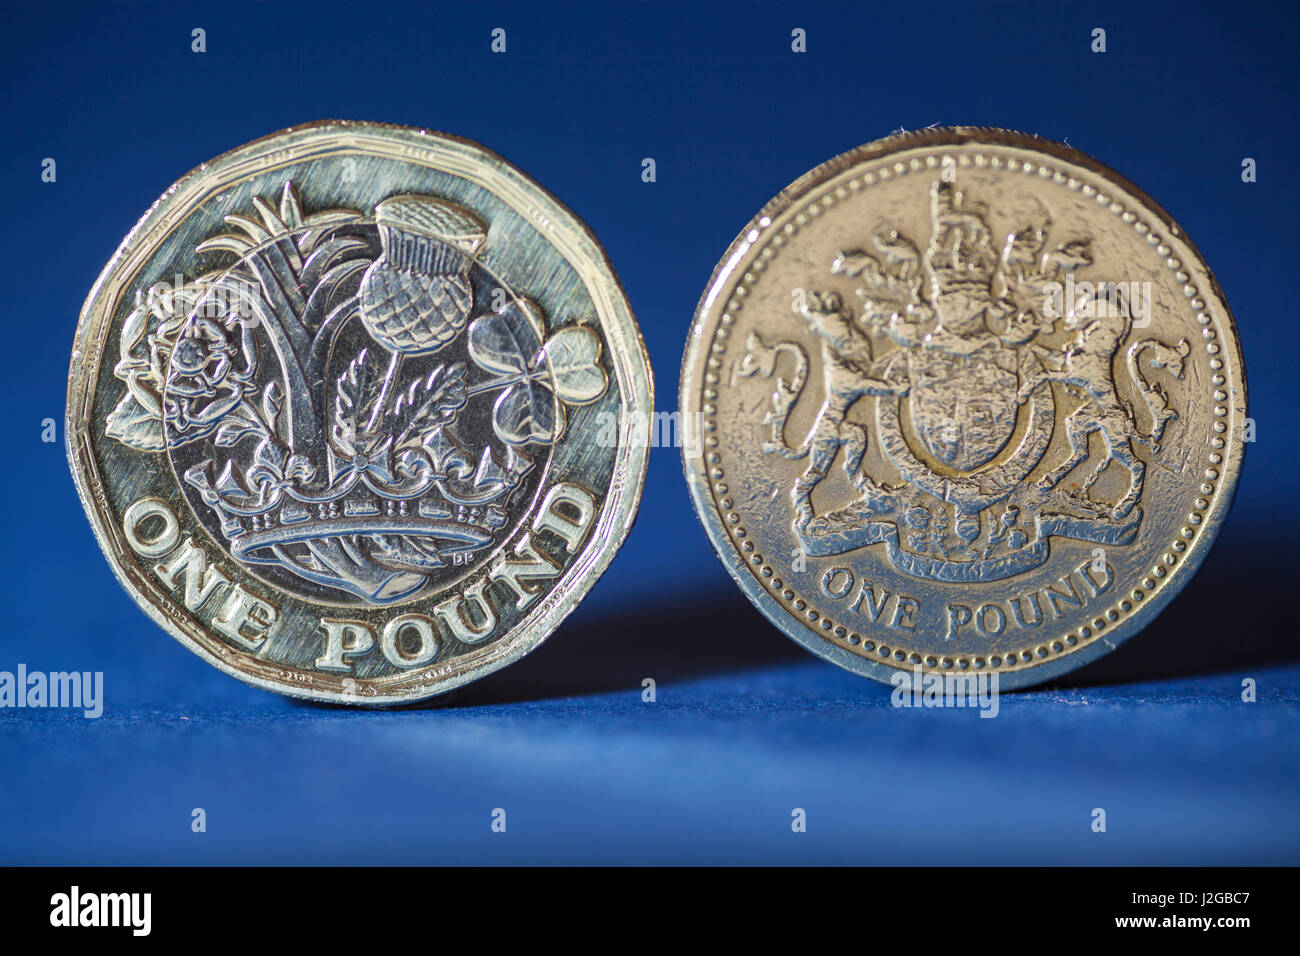 New pound coin 2012, 12 sided with old pound coin - Stock Image